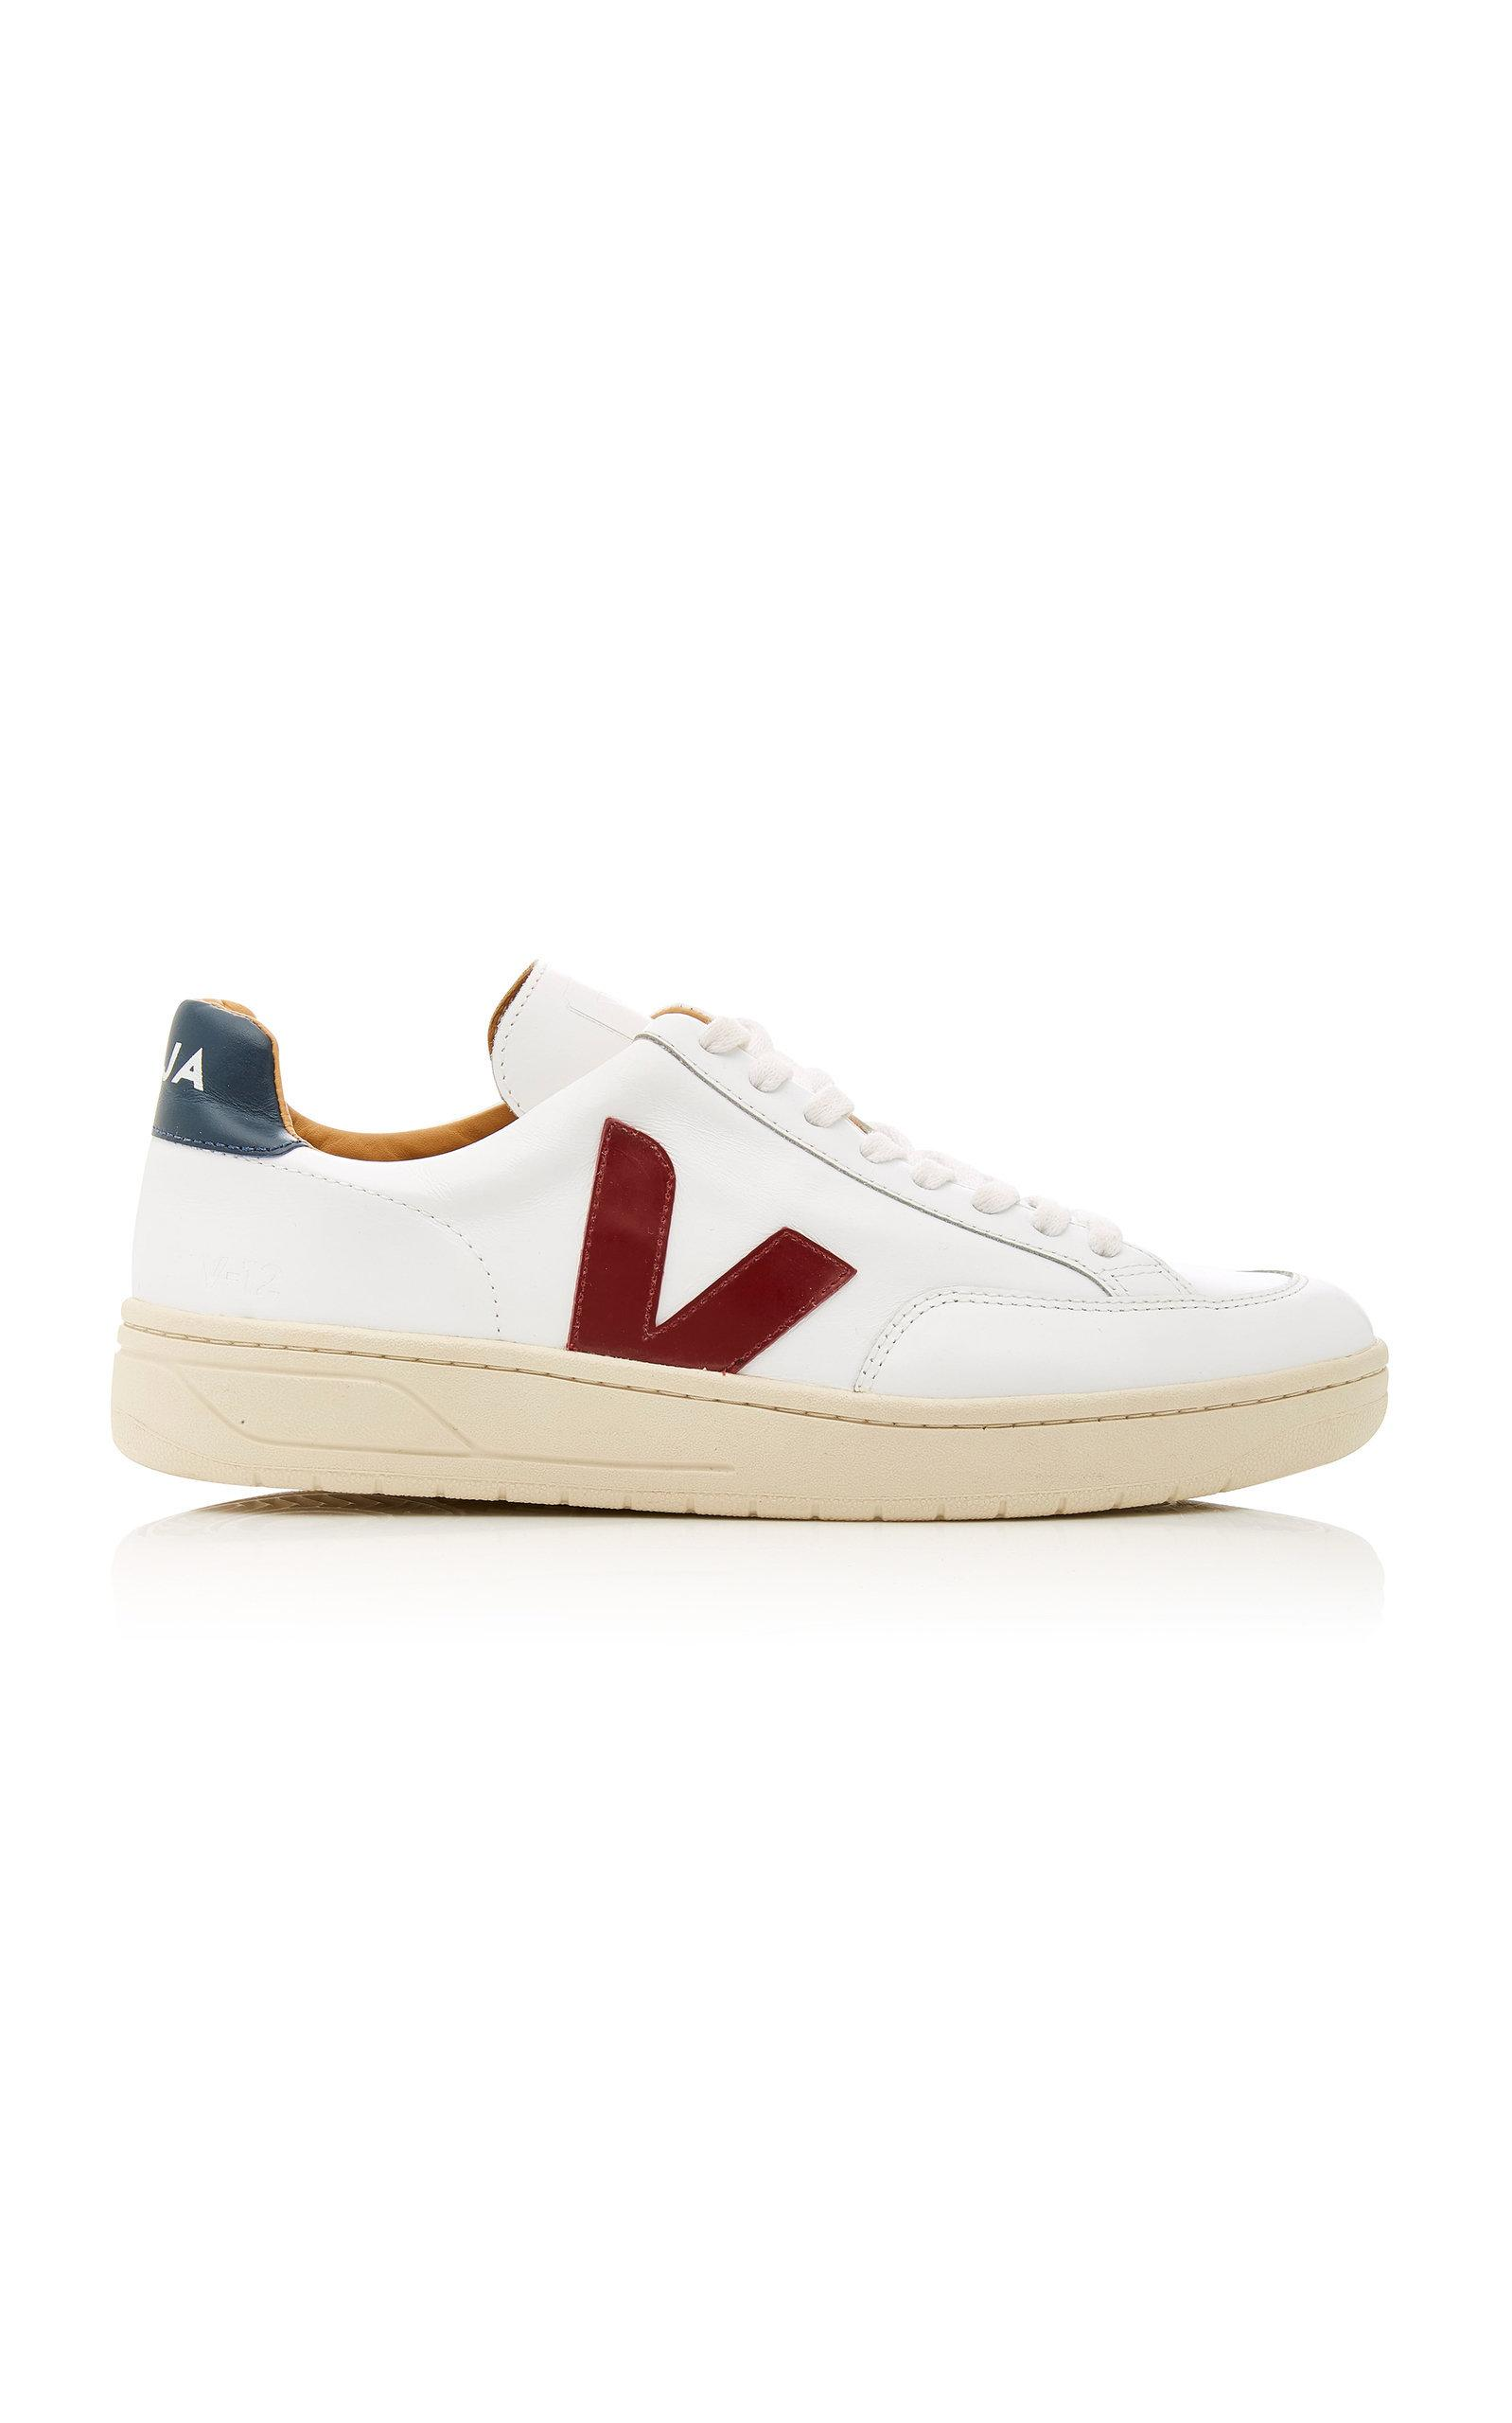 Veja Bastille Two-Tone Leather Sneakers In White